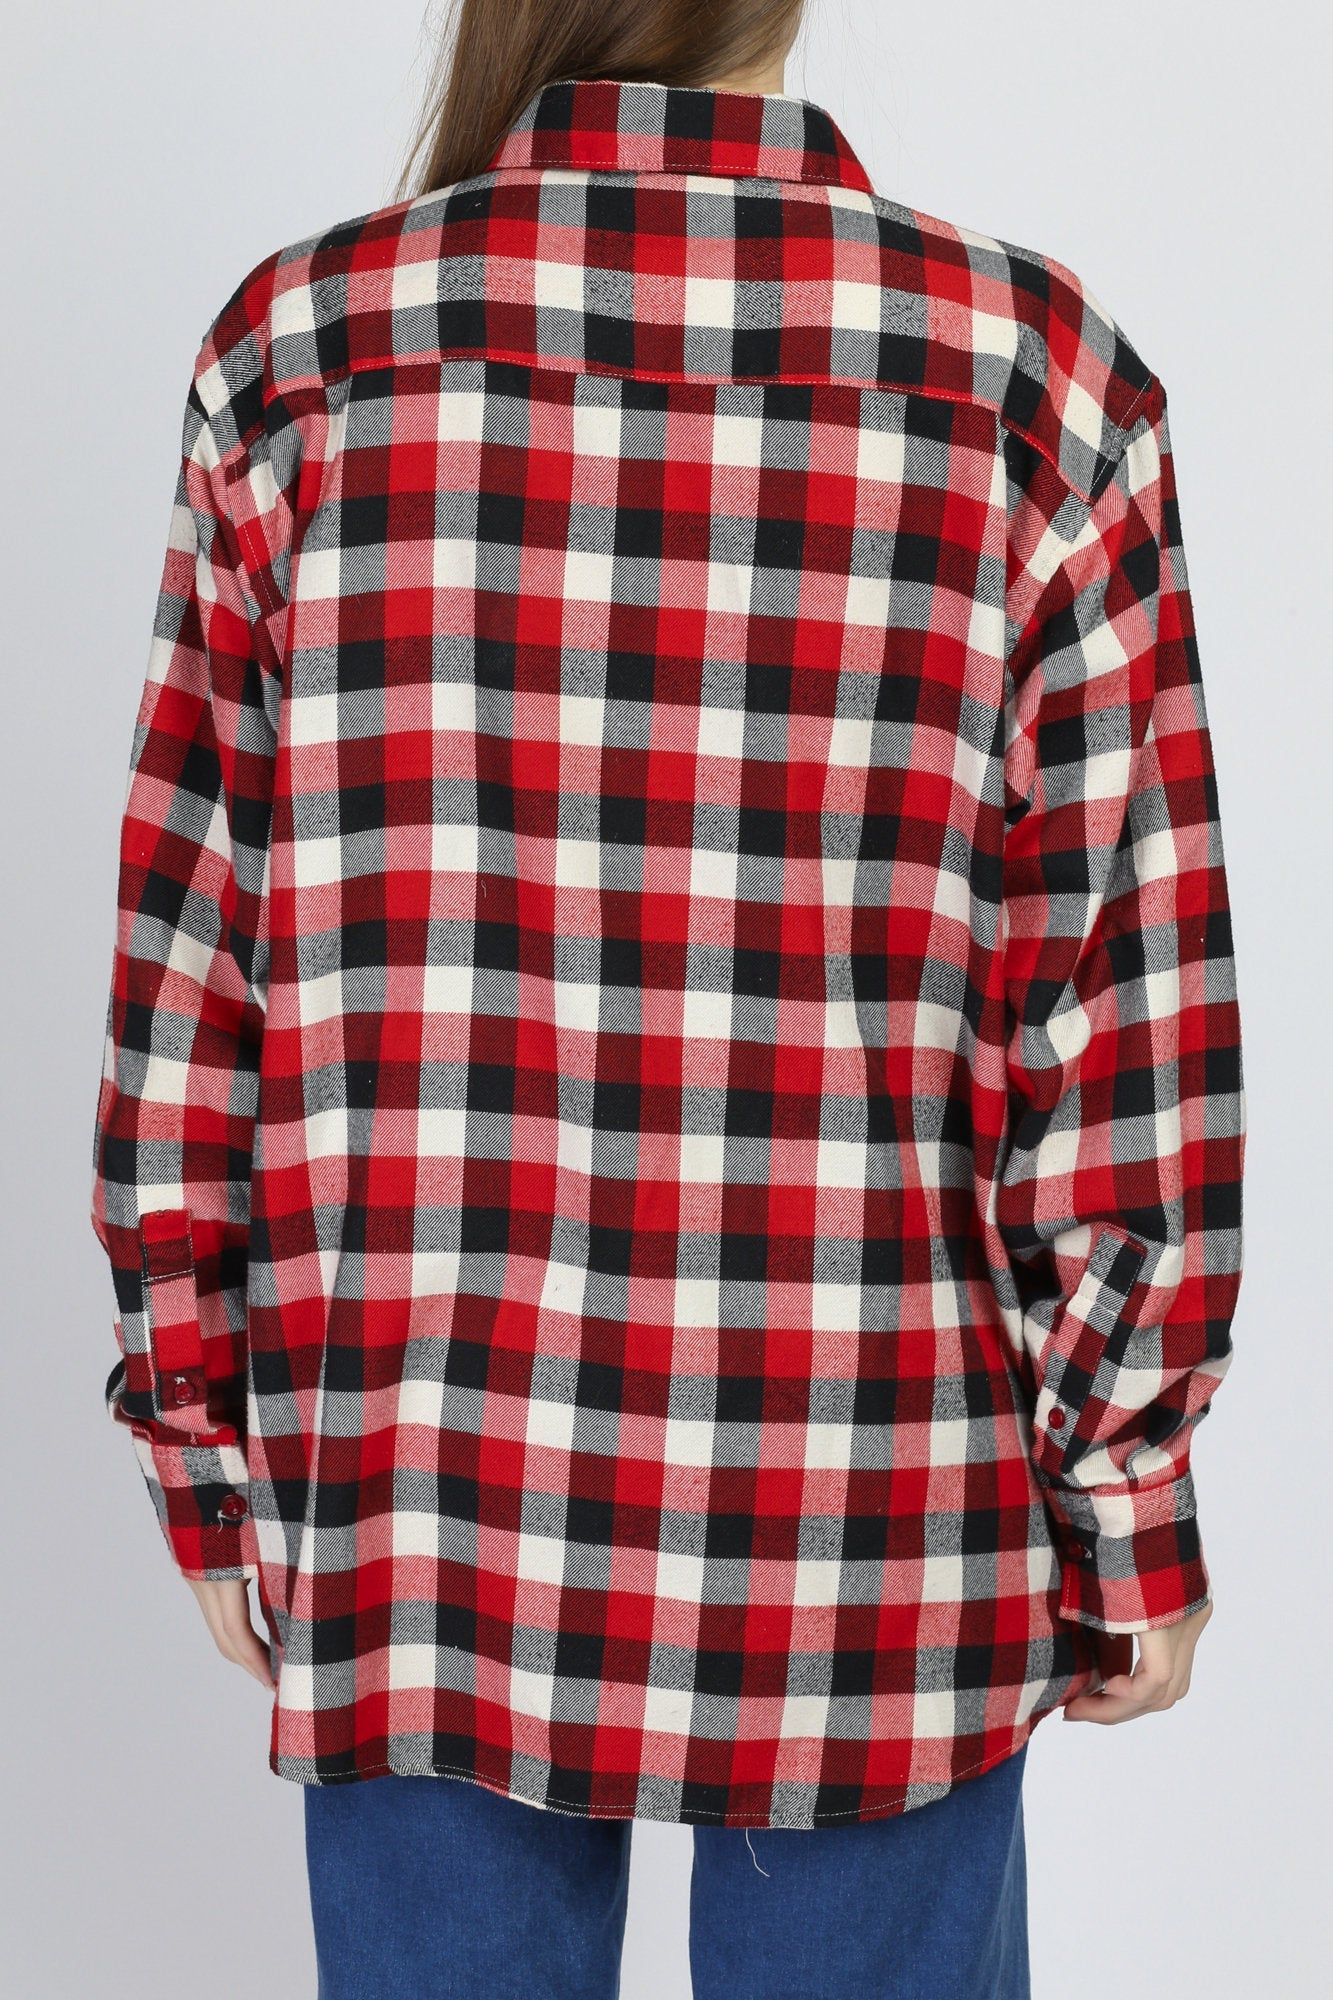 90s Soft Oversized Flannel Shirt - Men's XL